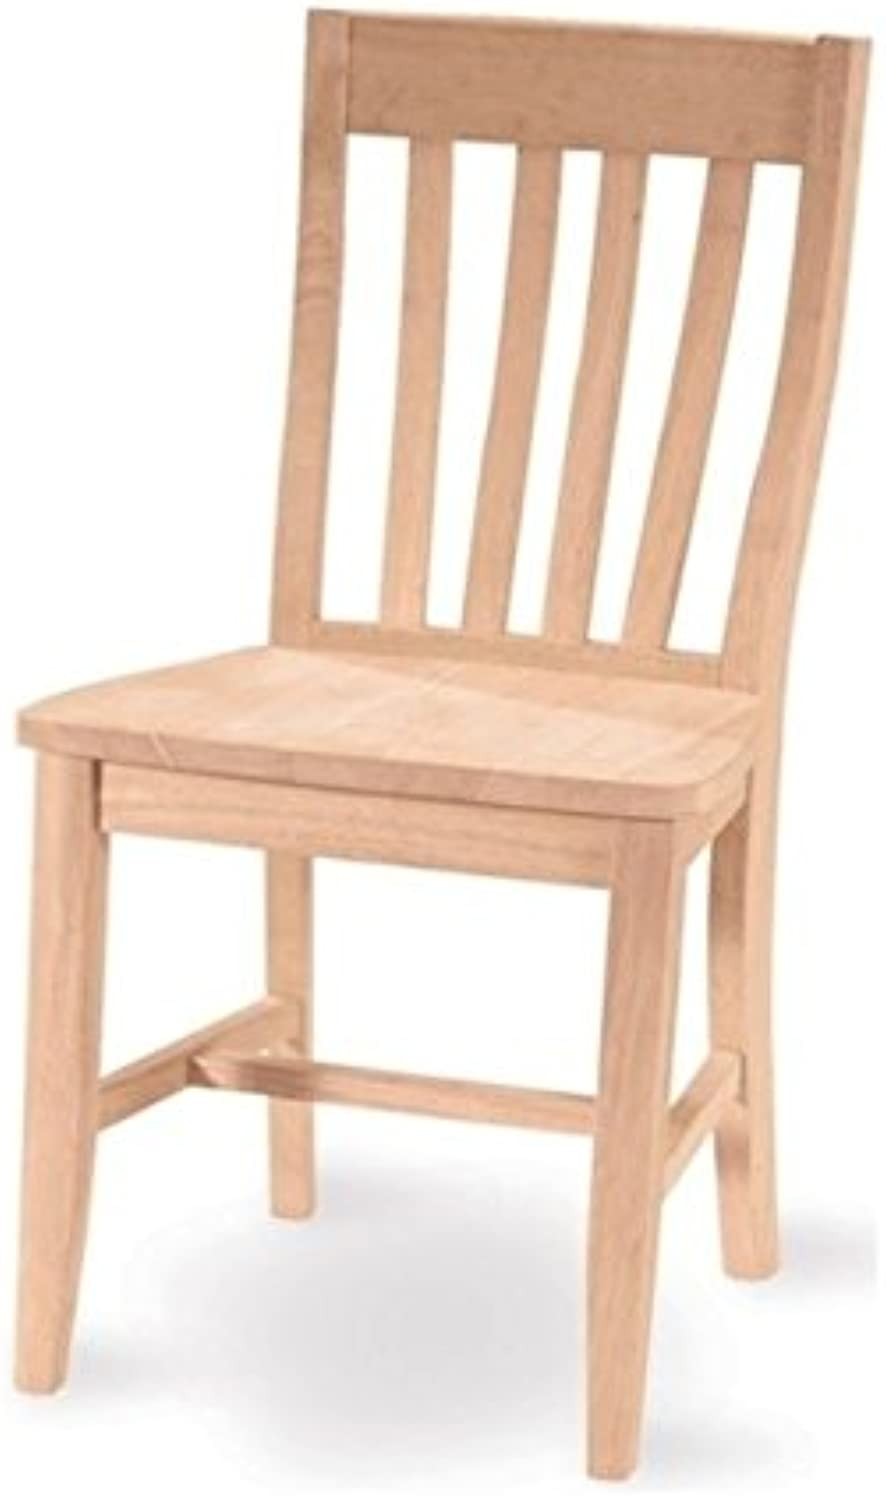 Pemberly Row Unfinished Cafe Dining Chair Set of 2